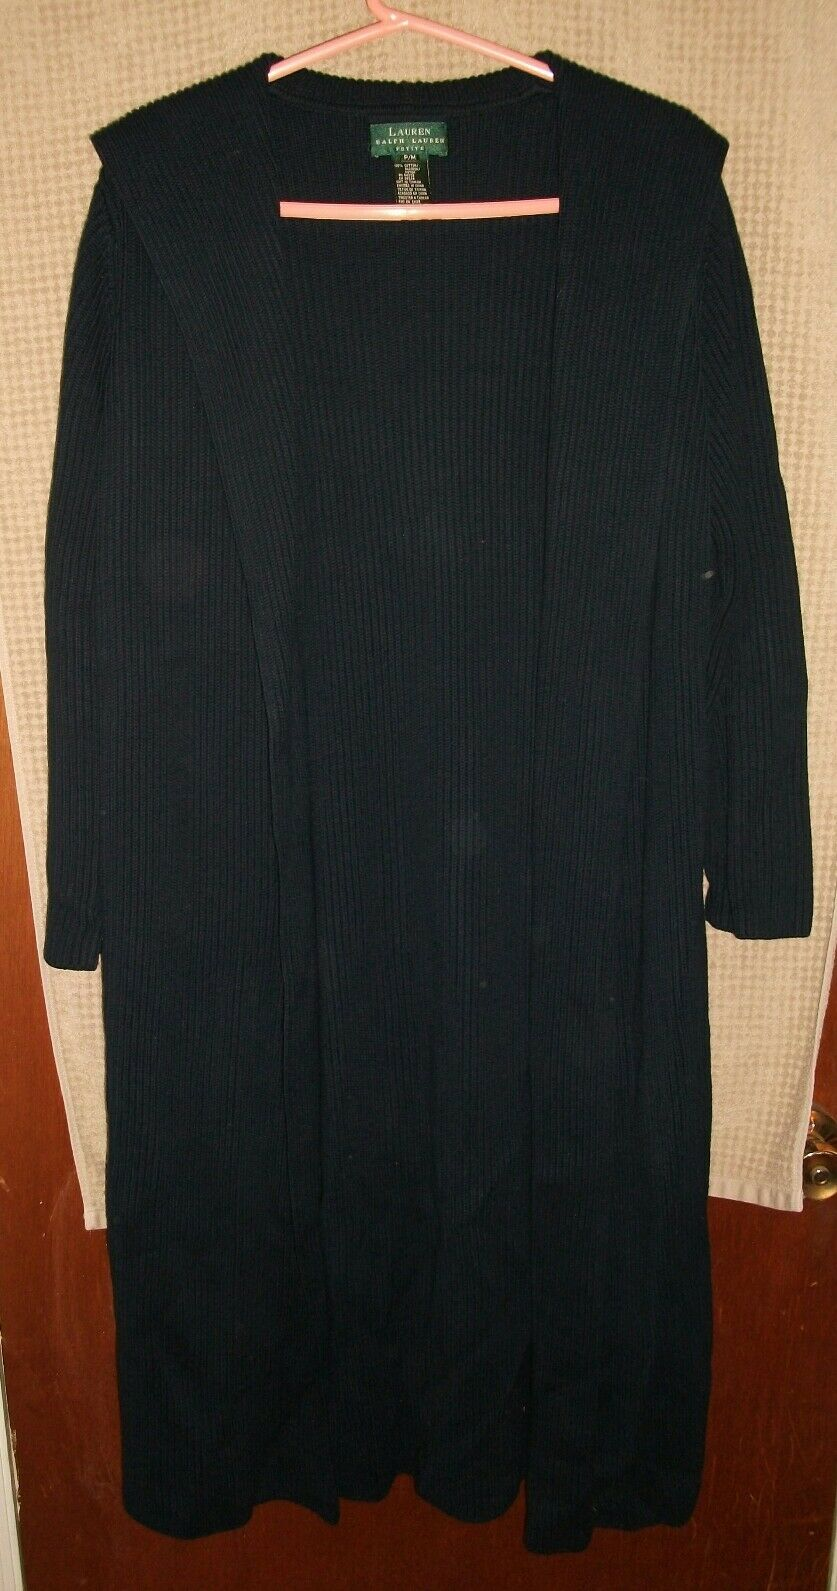 Lauren by Ralph Lauren Women's Cardigan  Sweater Robe Size Petite Medium M